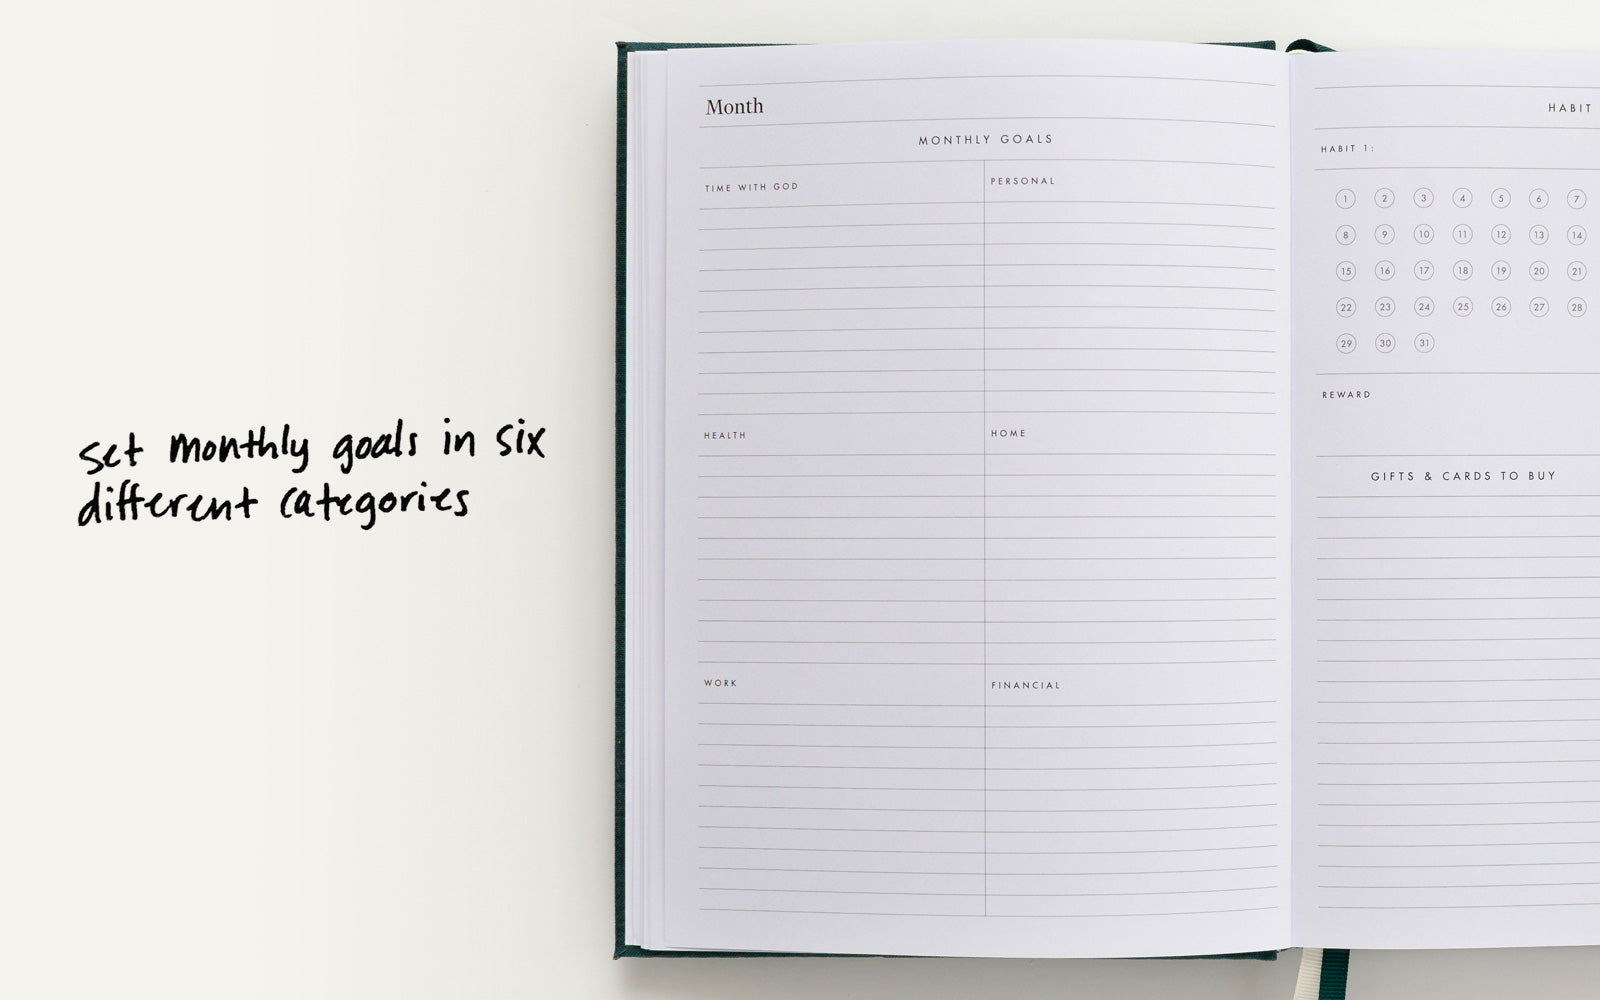 Set monthly goals in six different categories